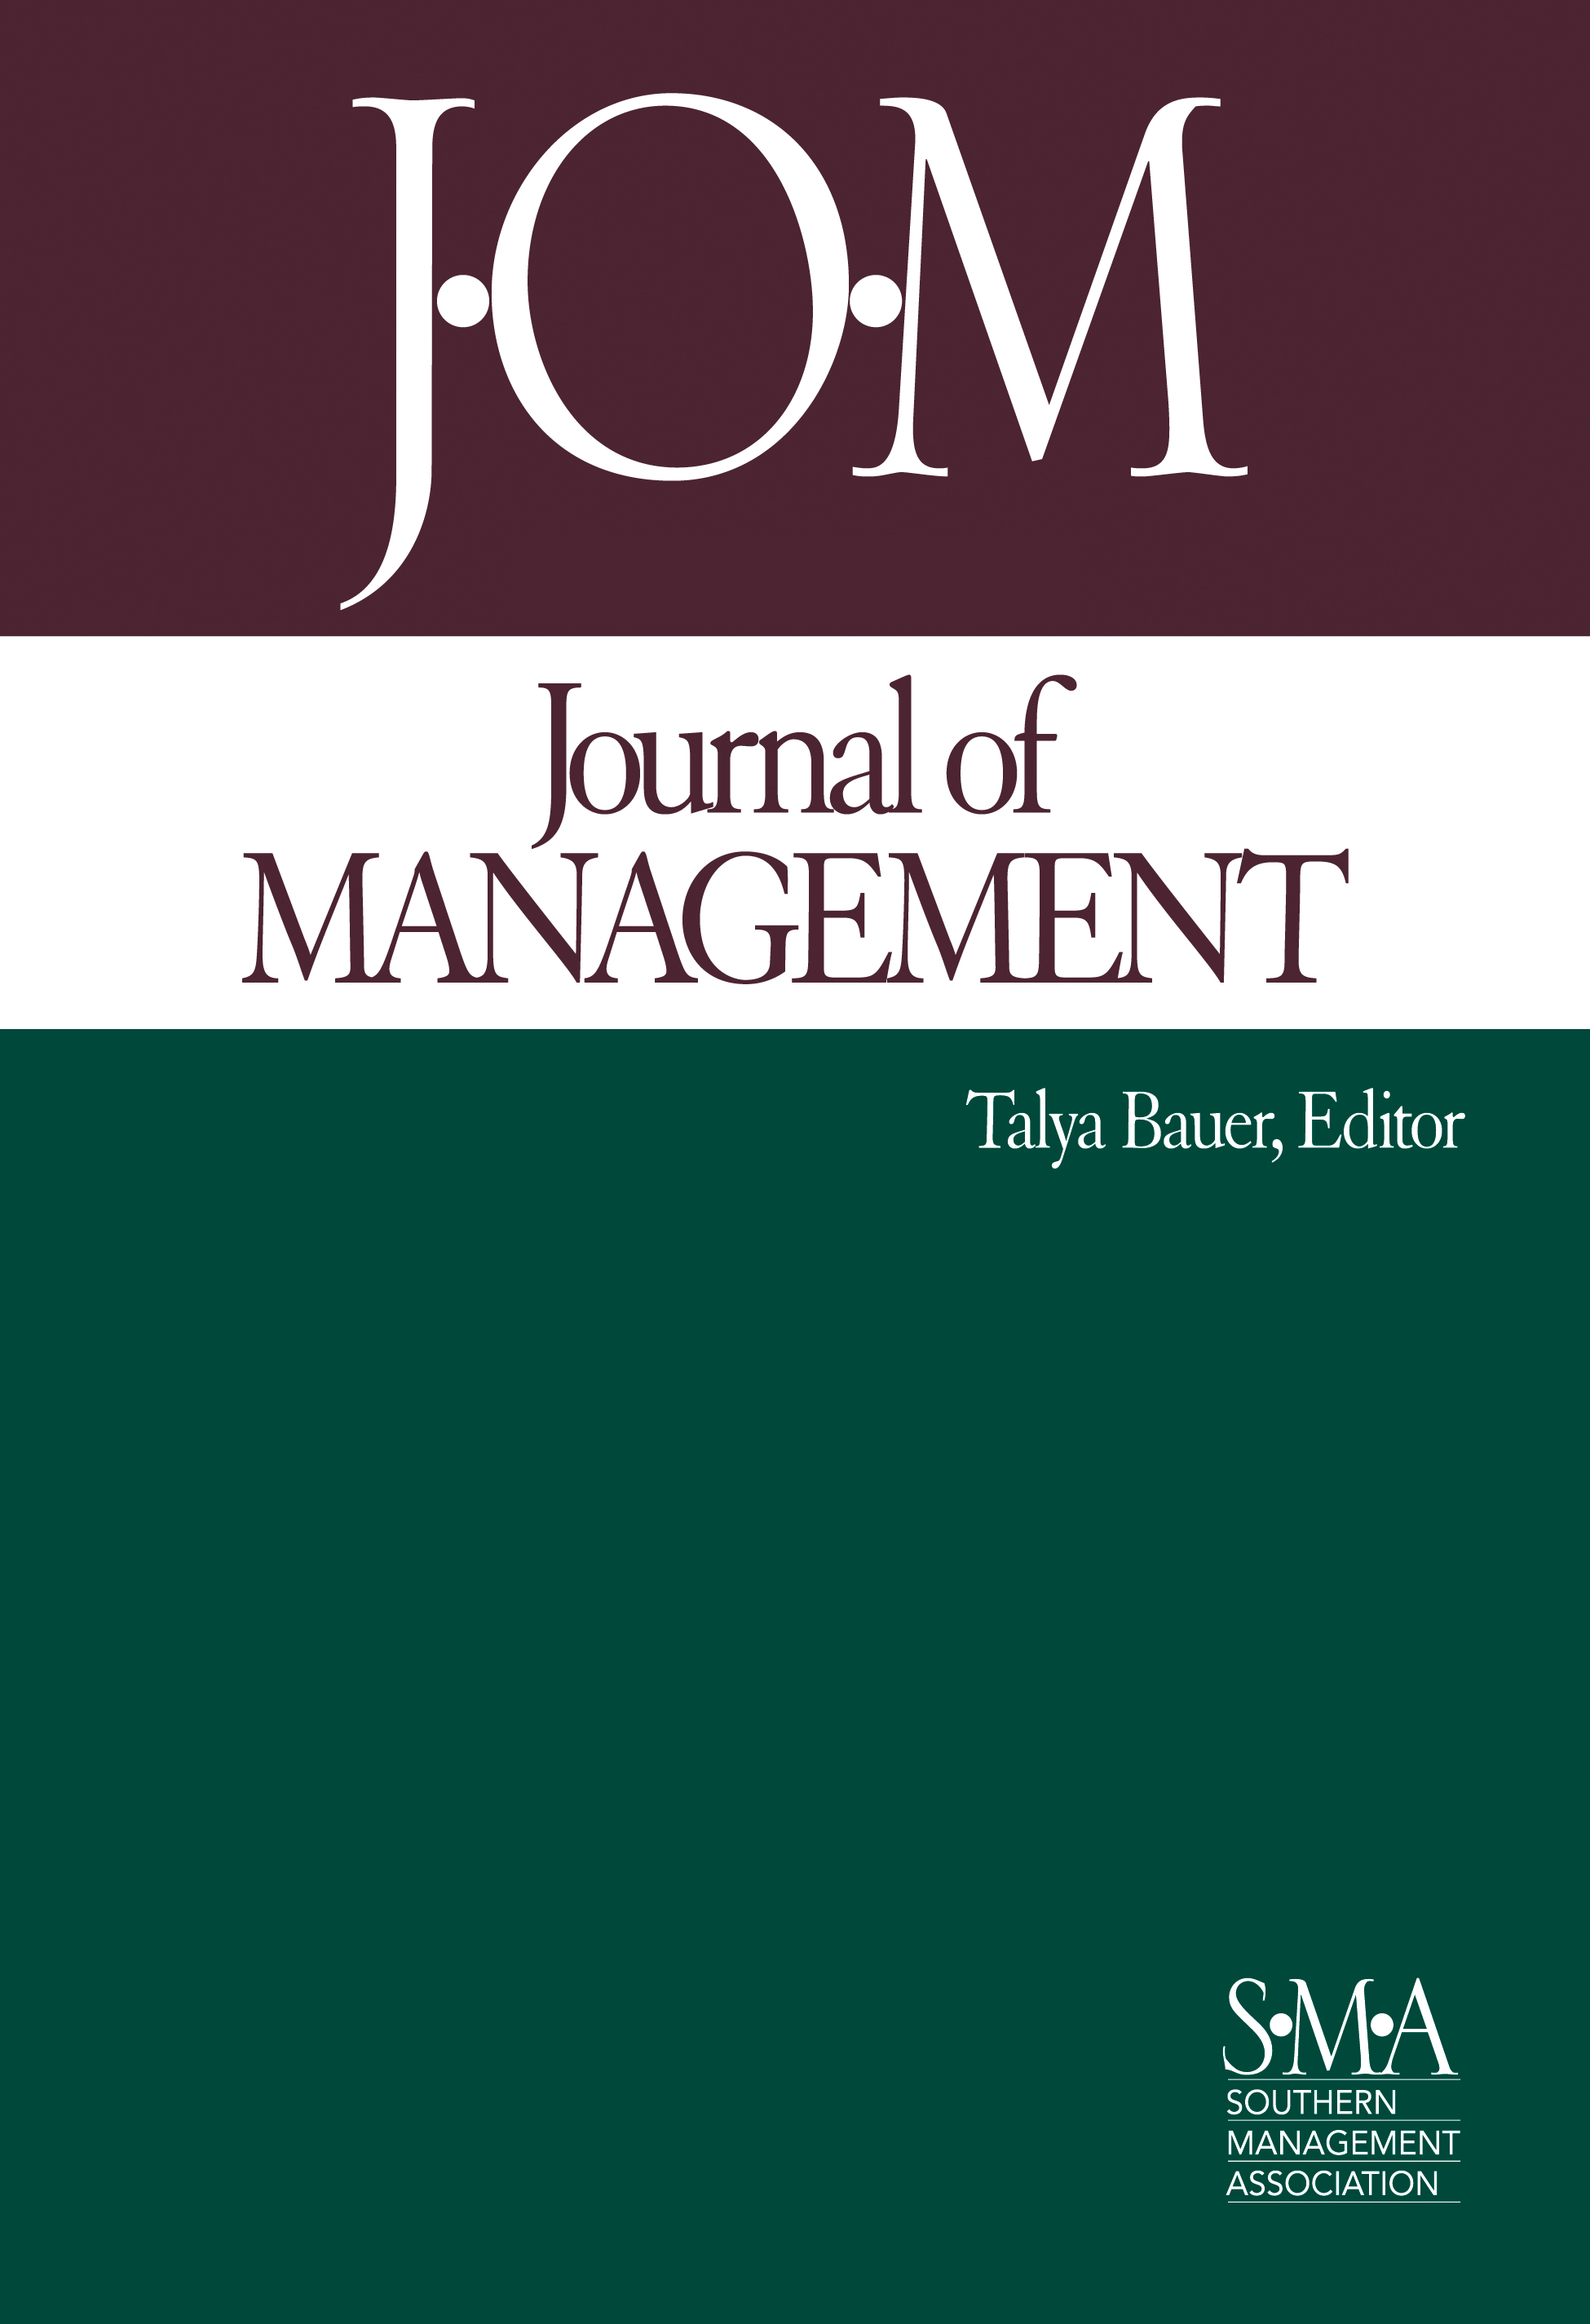 Journal of Management cover